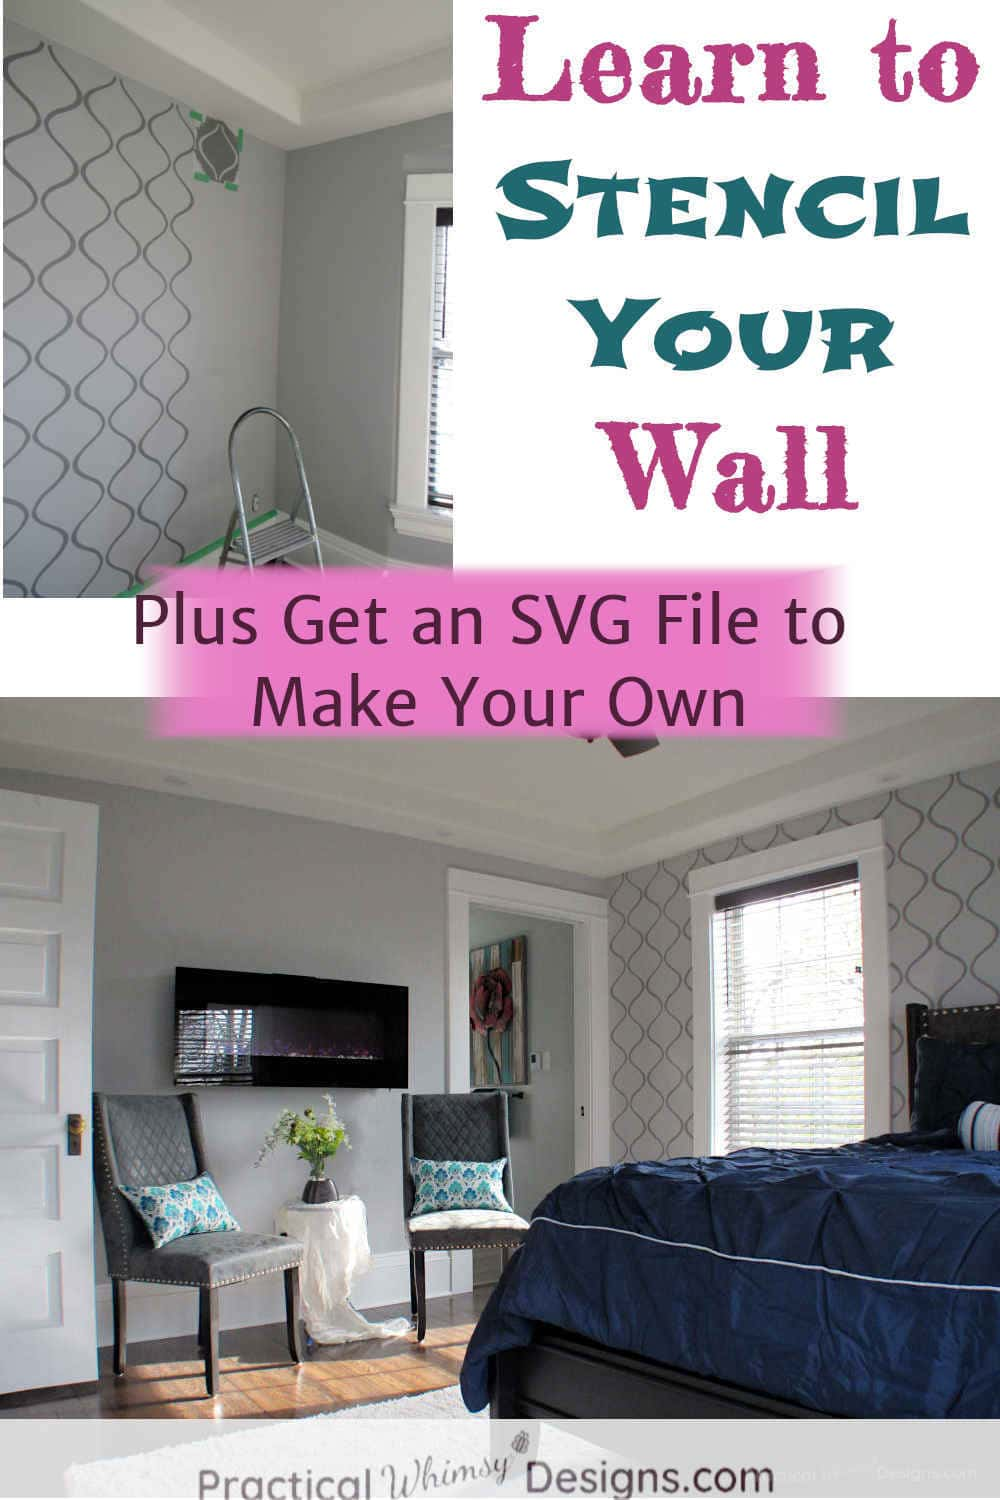 Learn to stencil your wall: grey wall with painted stencil in master bedroom